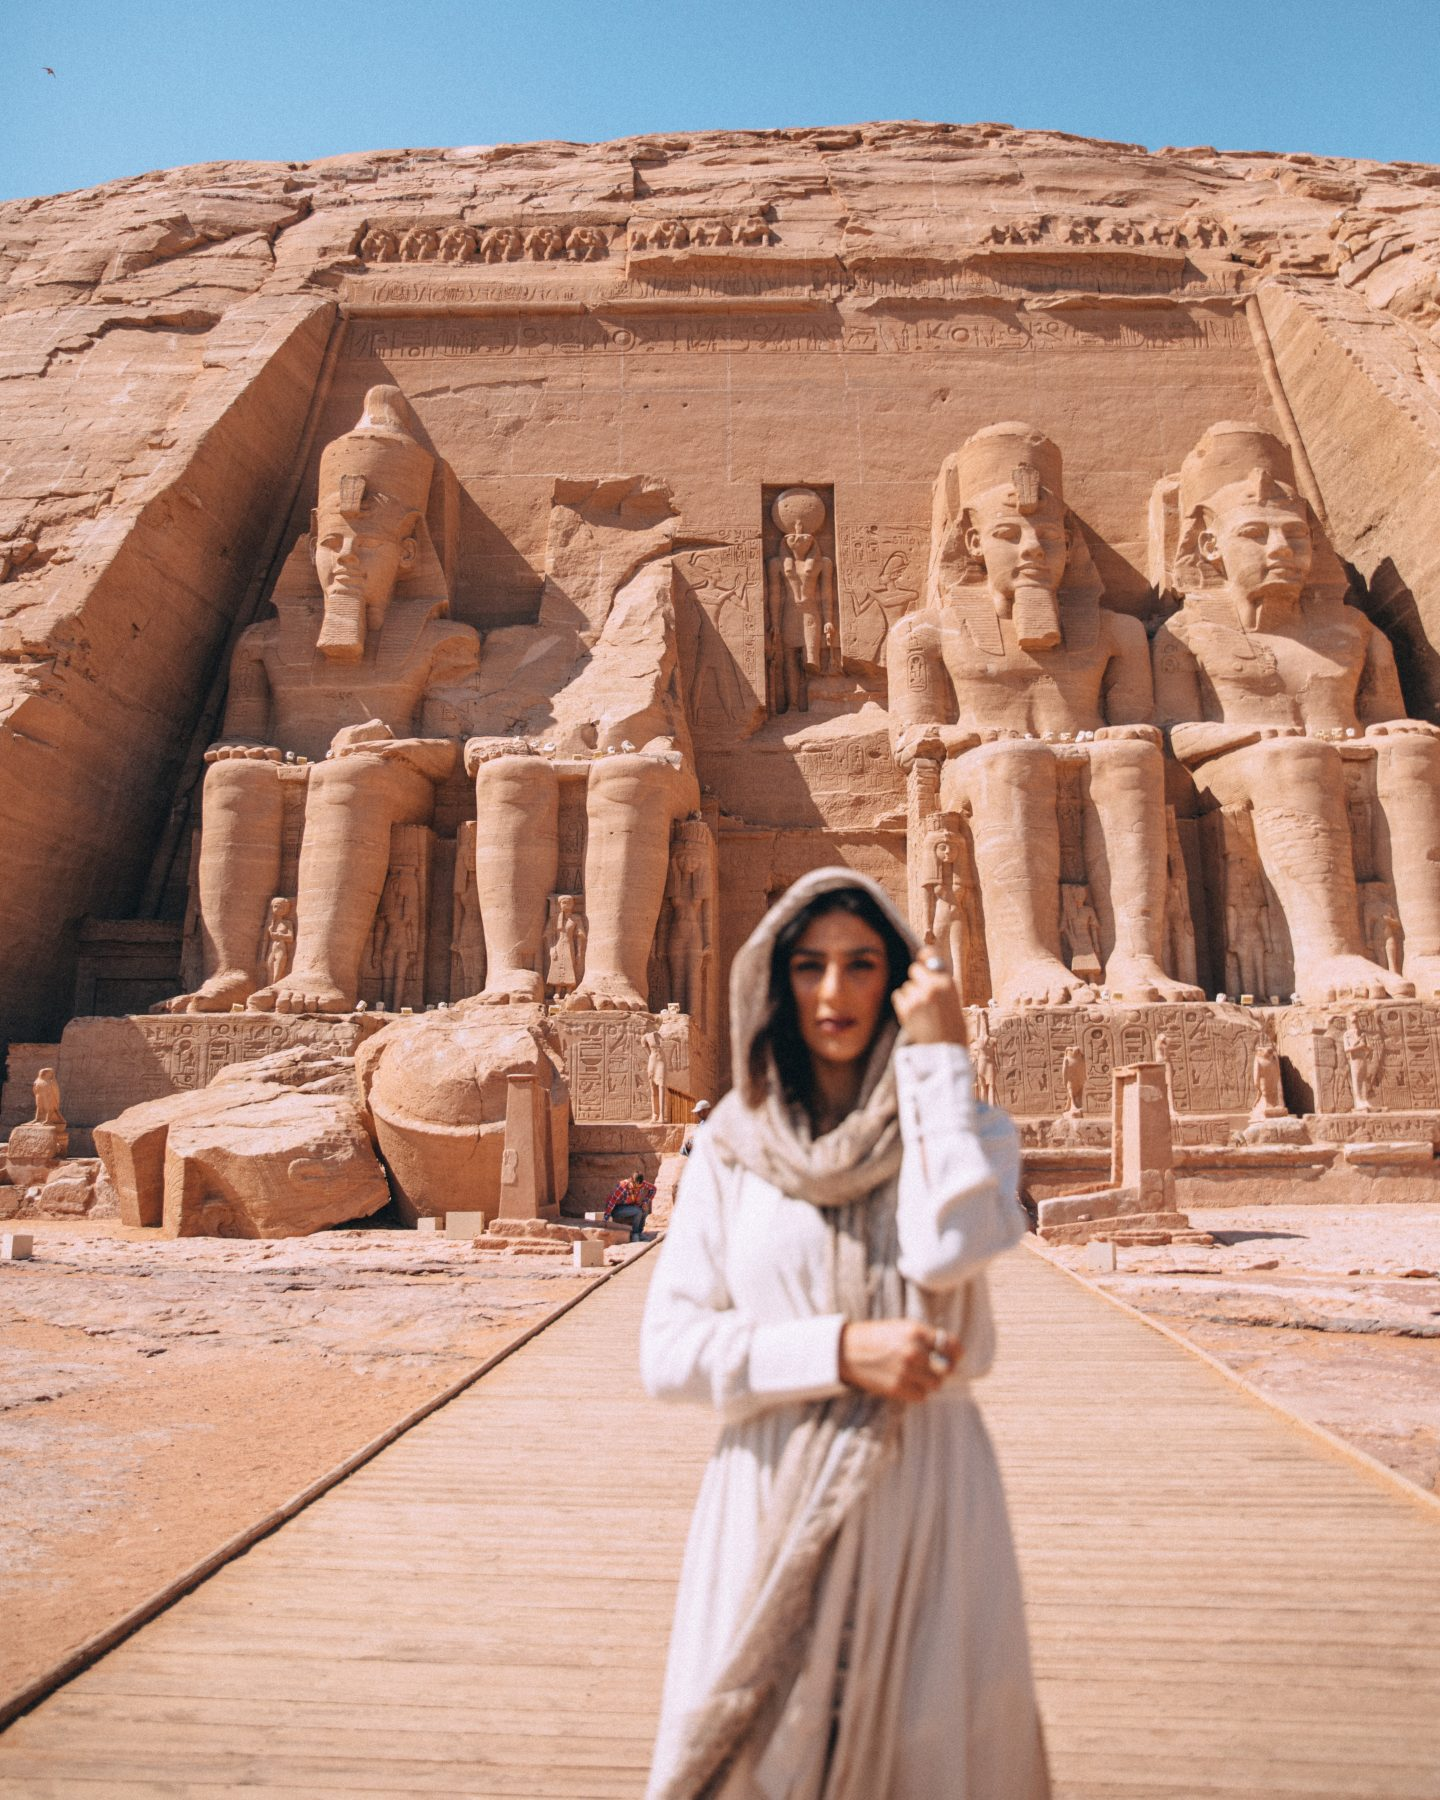 A woman walking away from the Temple of Ramesses in Abu Simbel, Egypt.